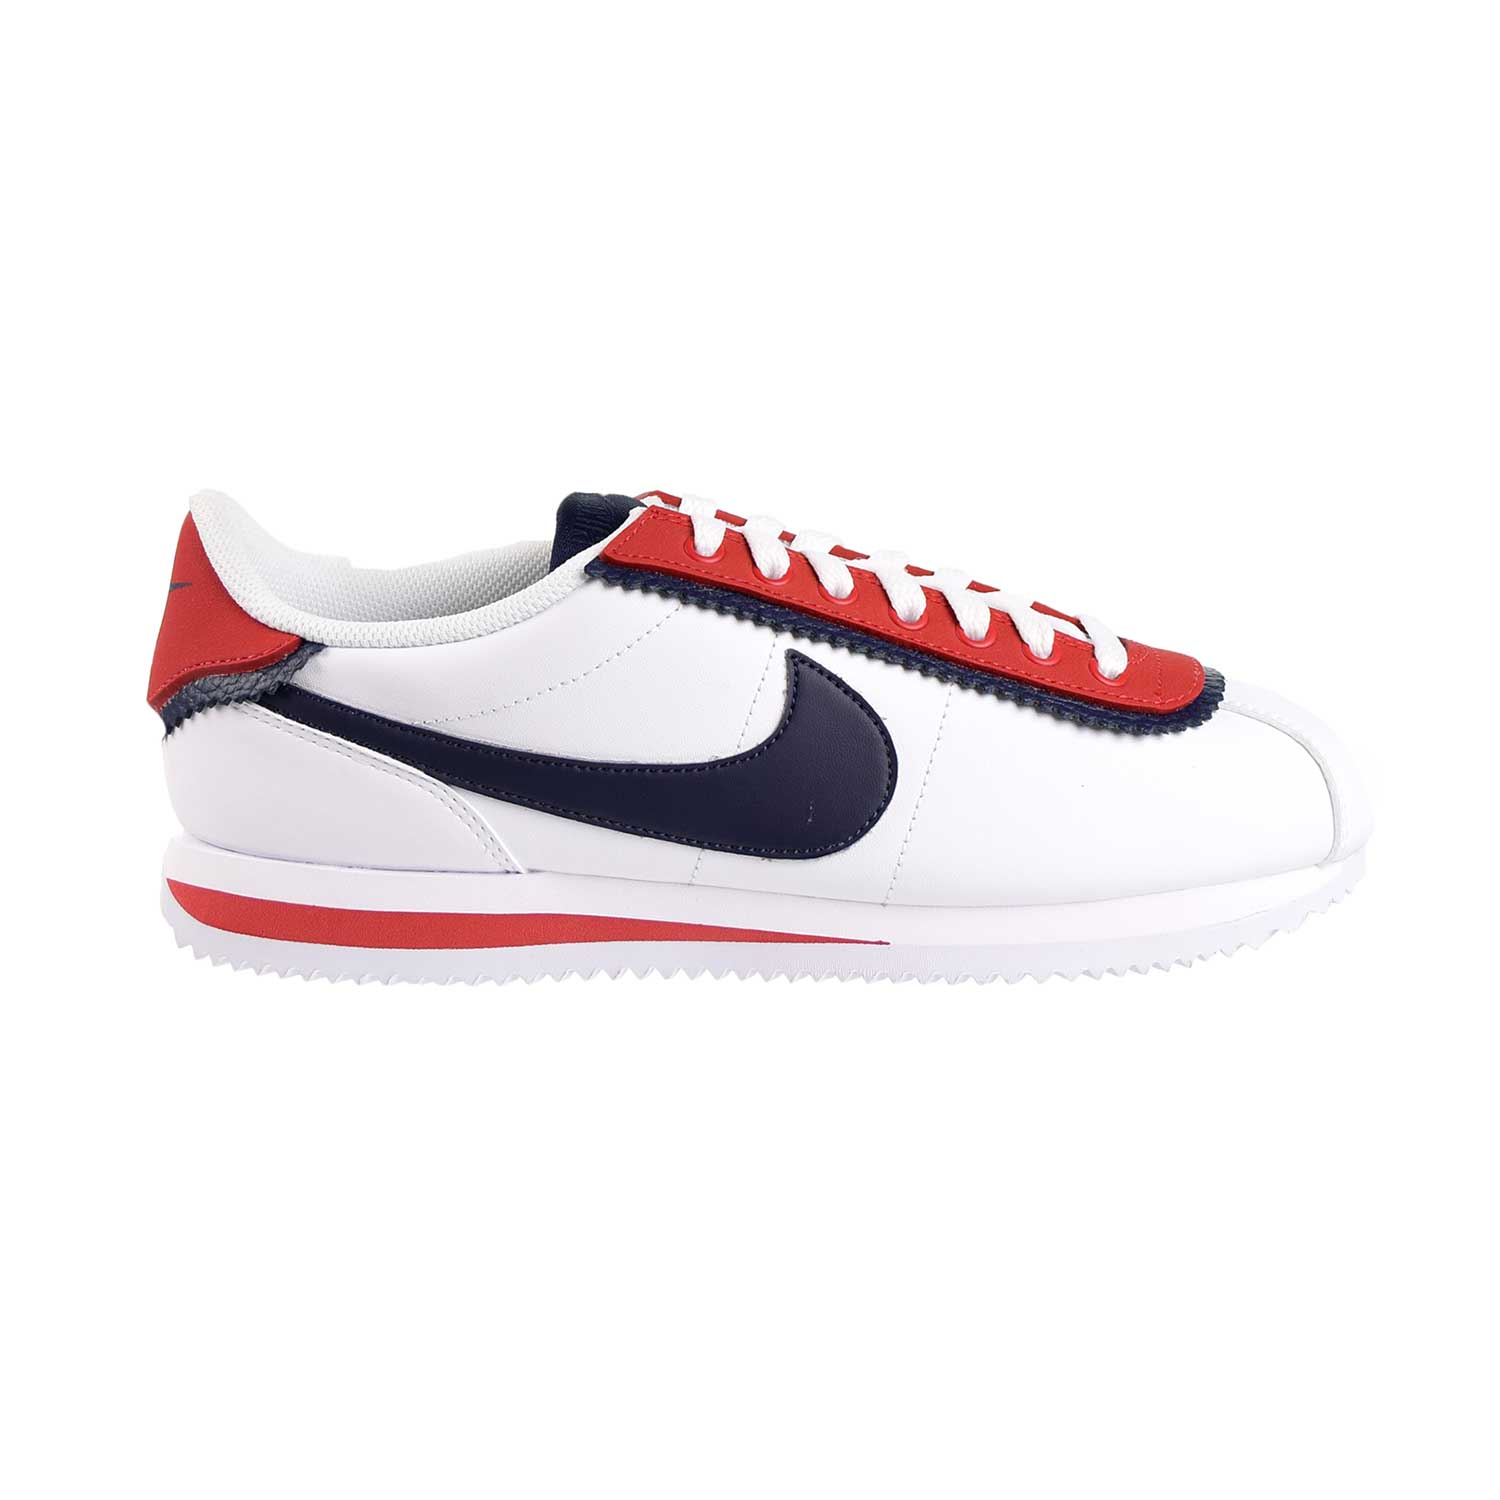 buy popular b9361 44aae Details about Nike Cortez Basic SE Mens Shoes White/Obsidian/University Red  CD7253-100